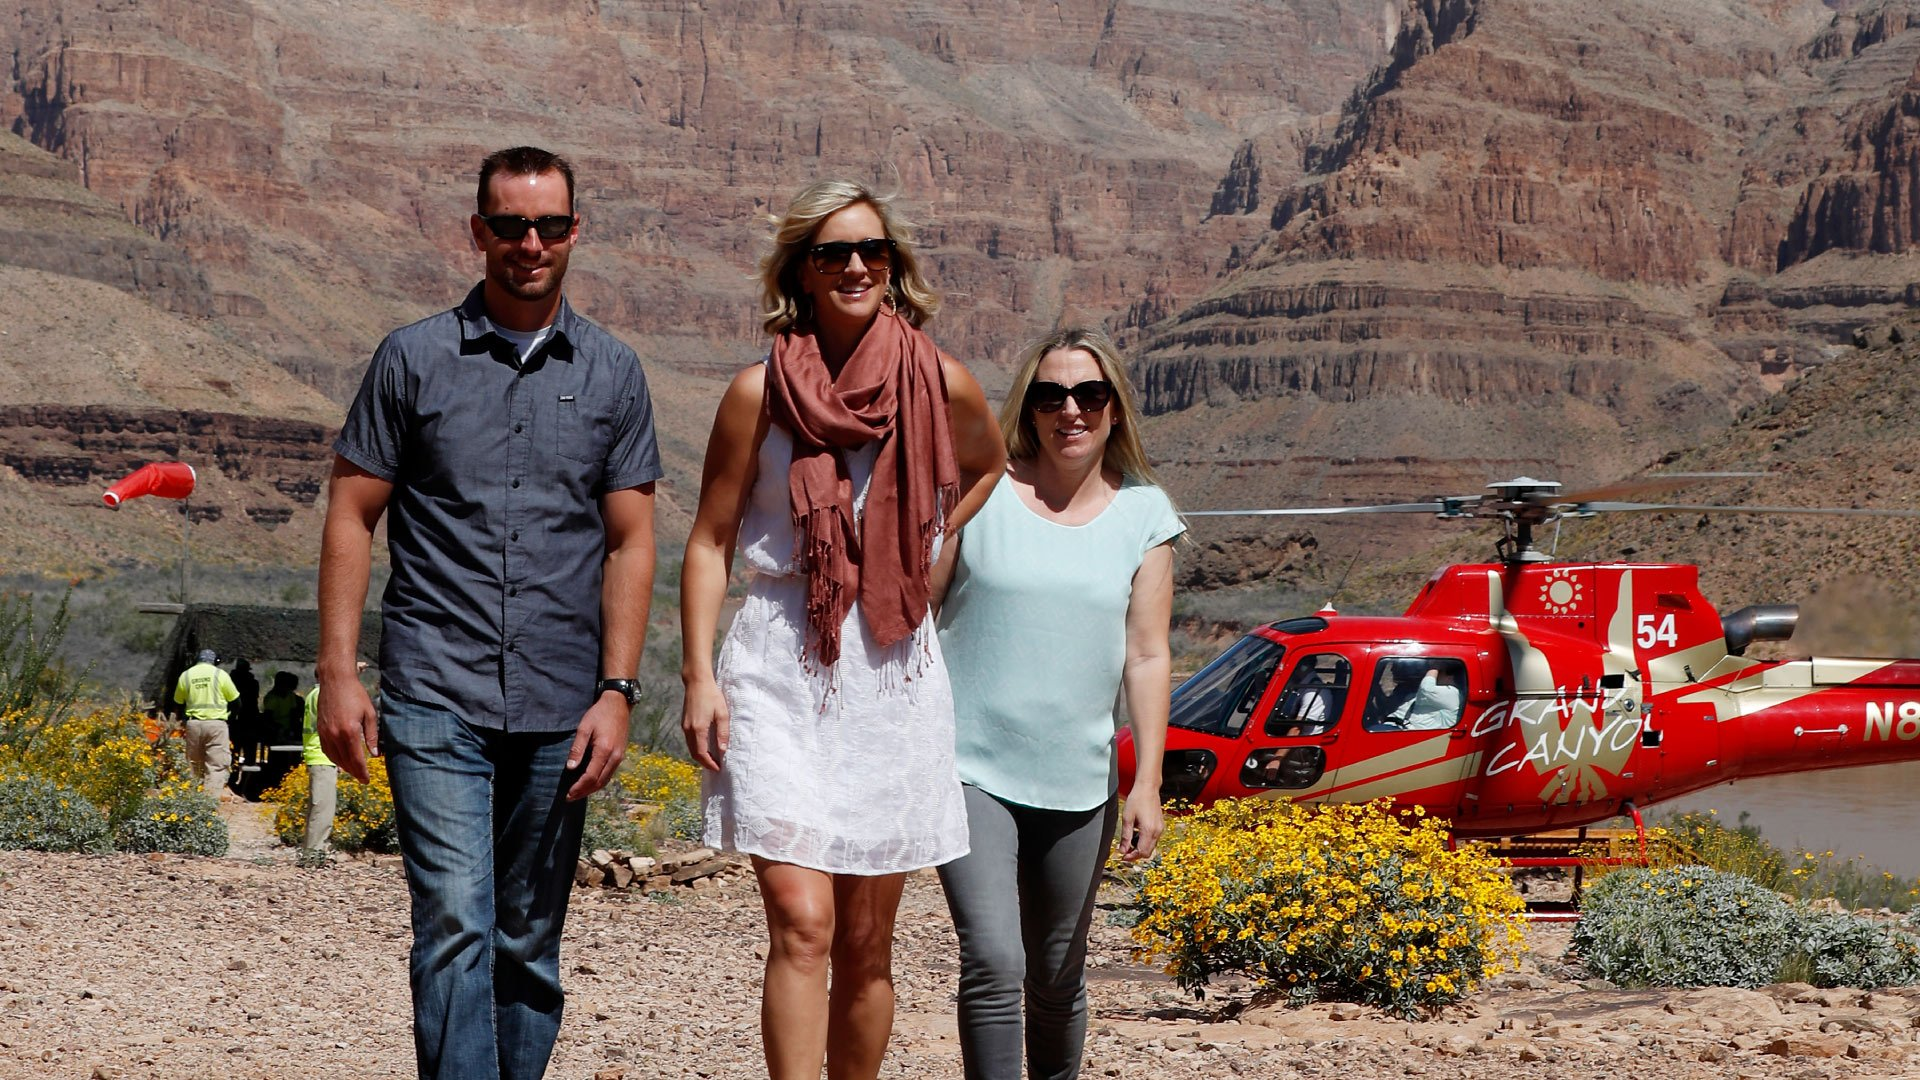 Two EC-130 helicopters landed at the bottom of the Grand Canyon